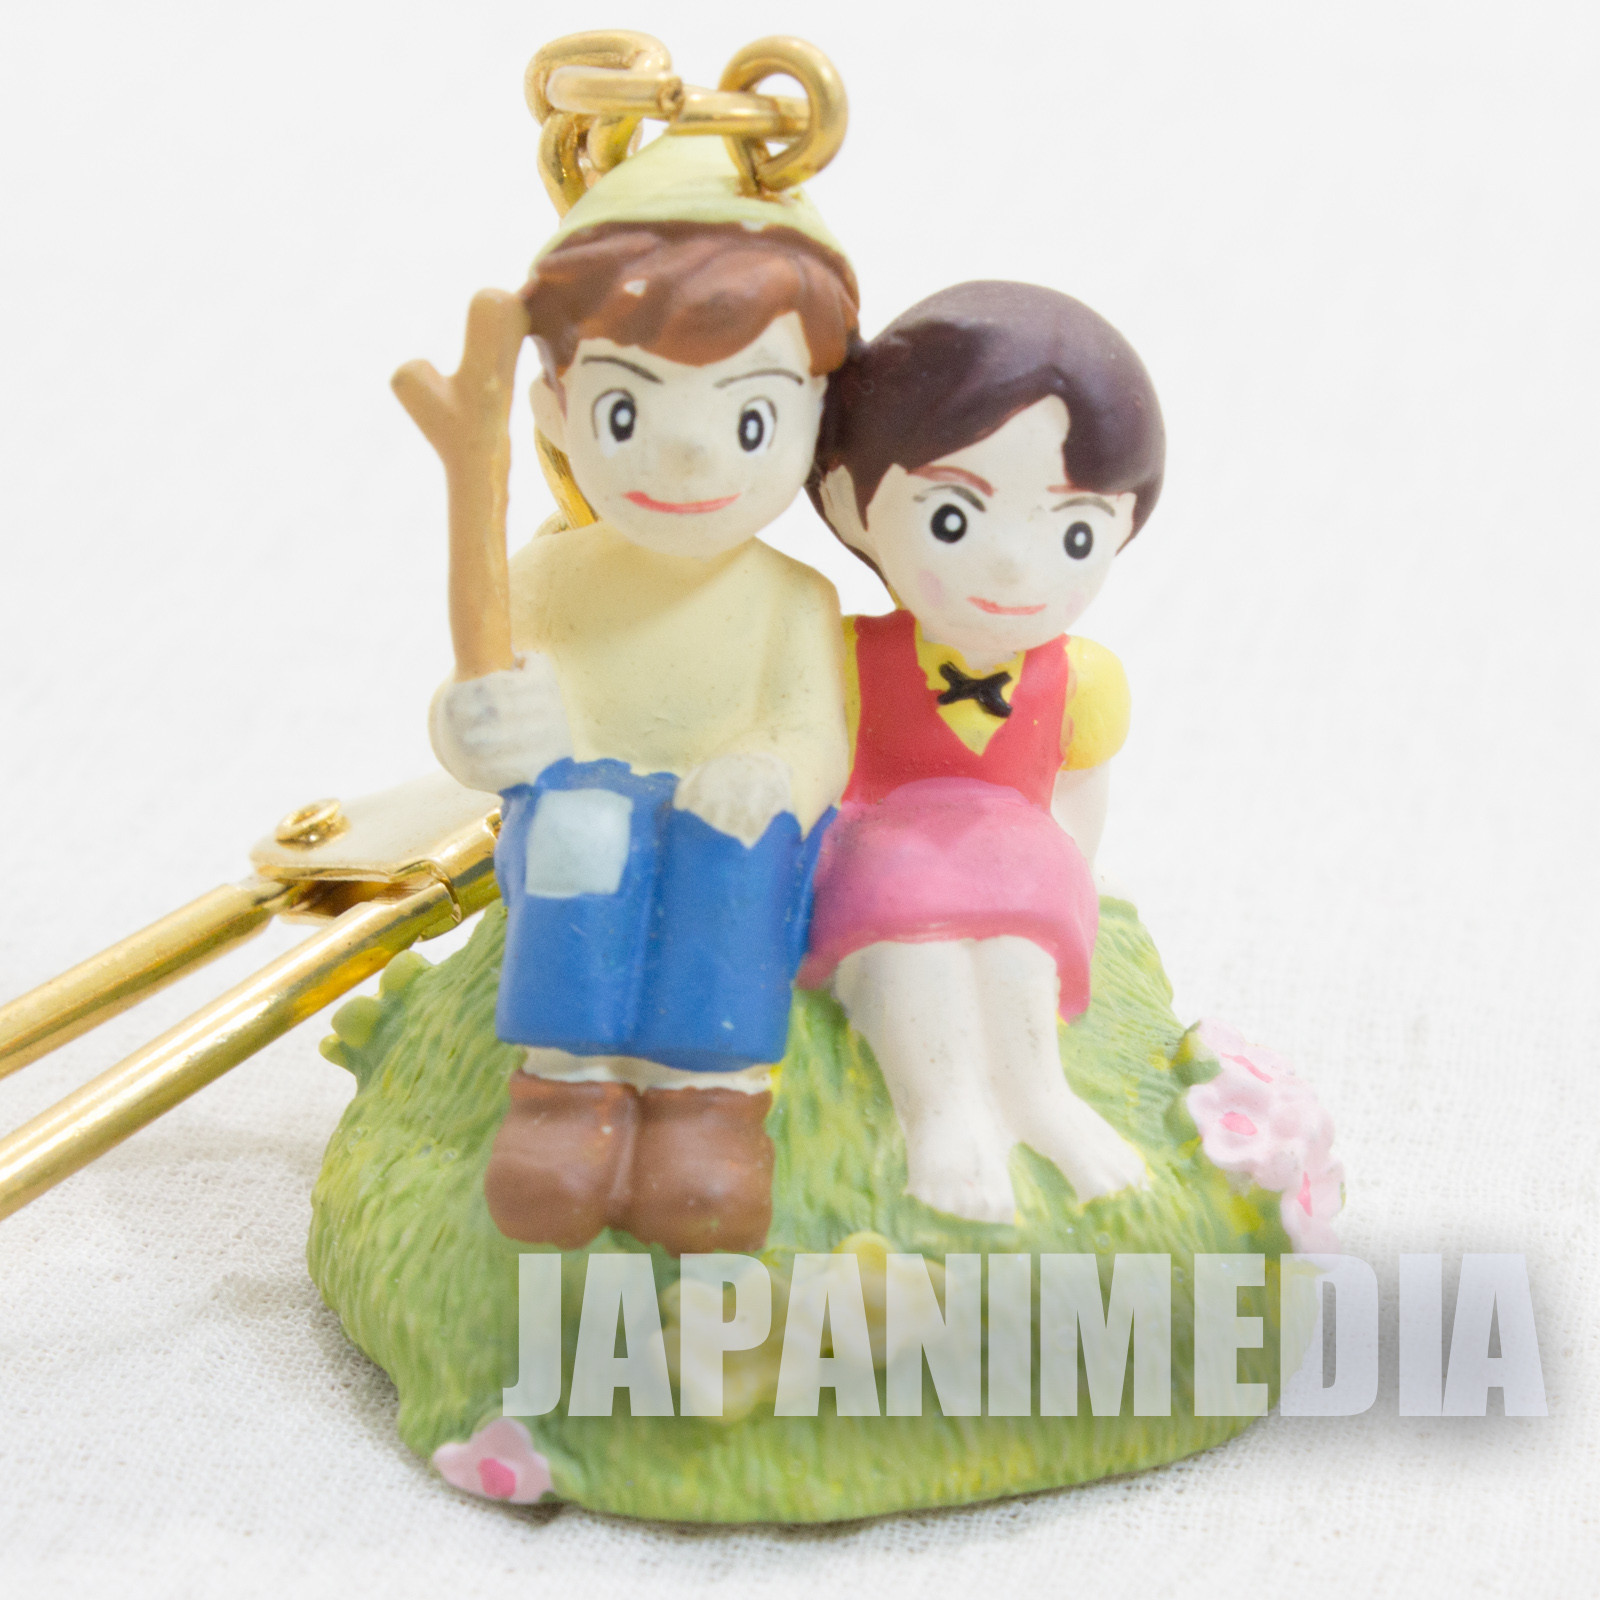 RARE Heidi Girl of the Alps Heidi & Peter Polystone Figure Keychain JAPAN ANIME